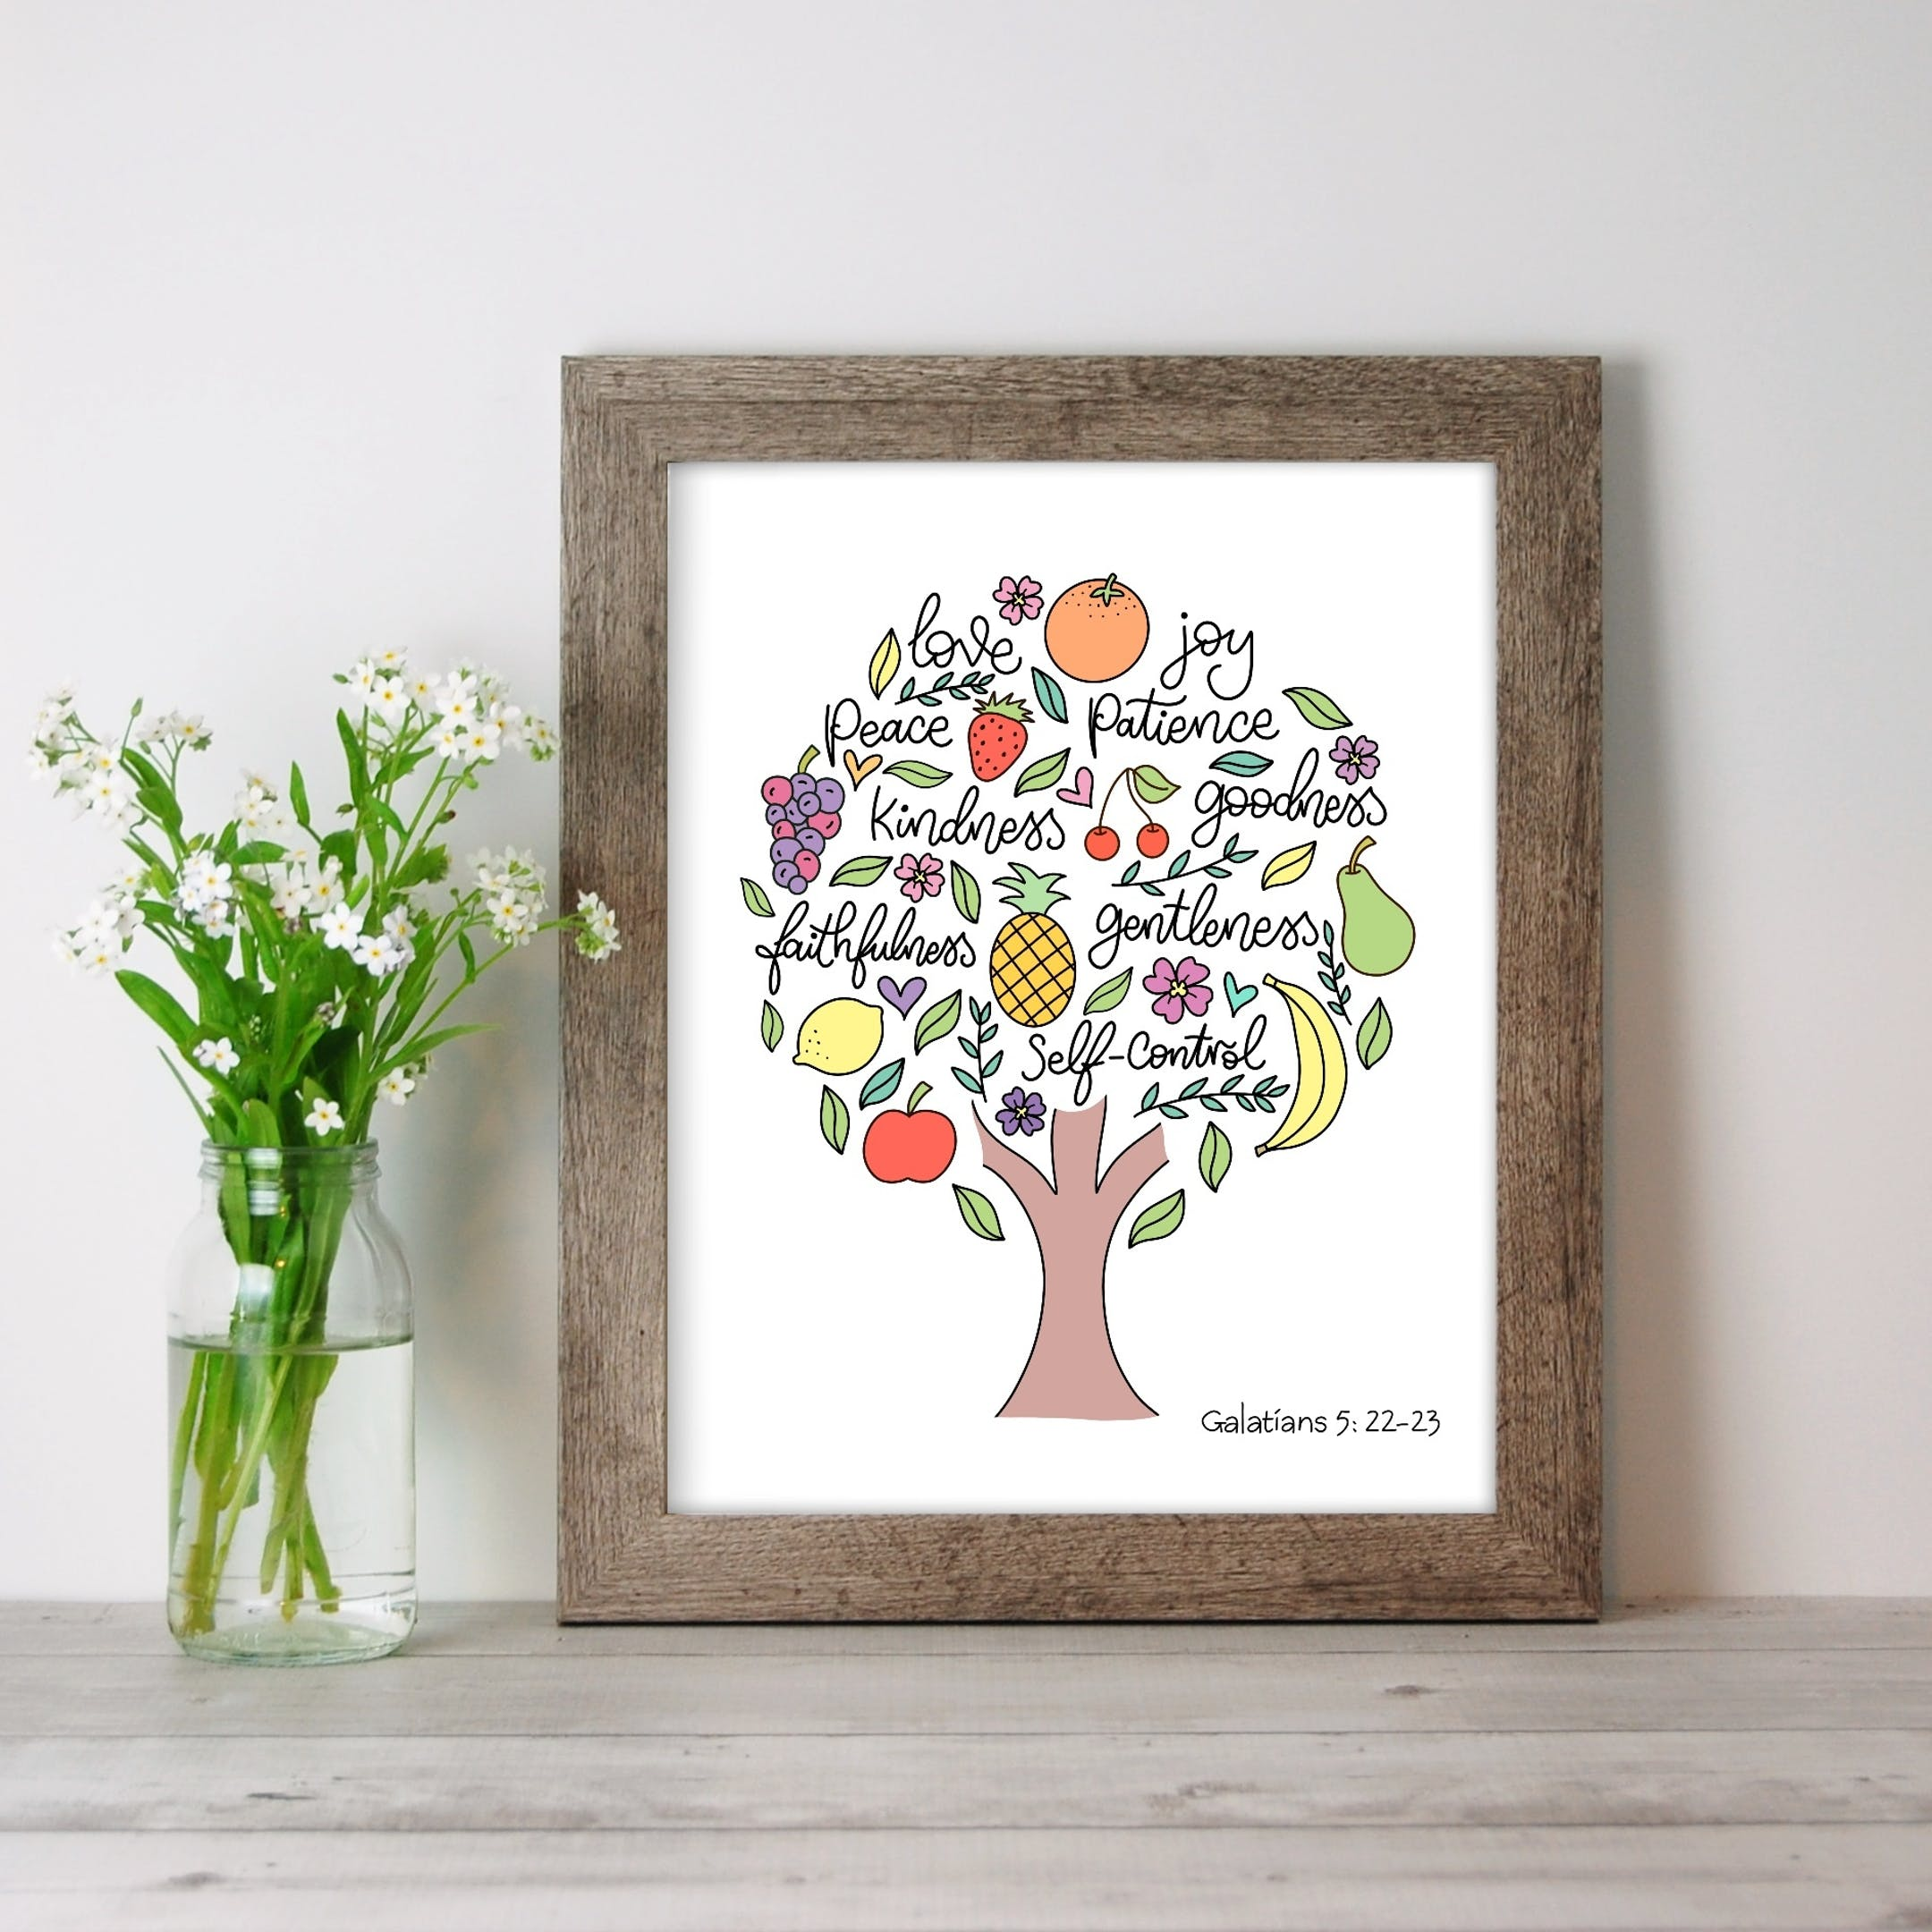 A Christian Print of a Tree filled with the Fruit of the Spirit words and various fruits on a white background by Sharon White Designs @ Cheerfully Given